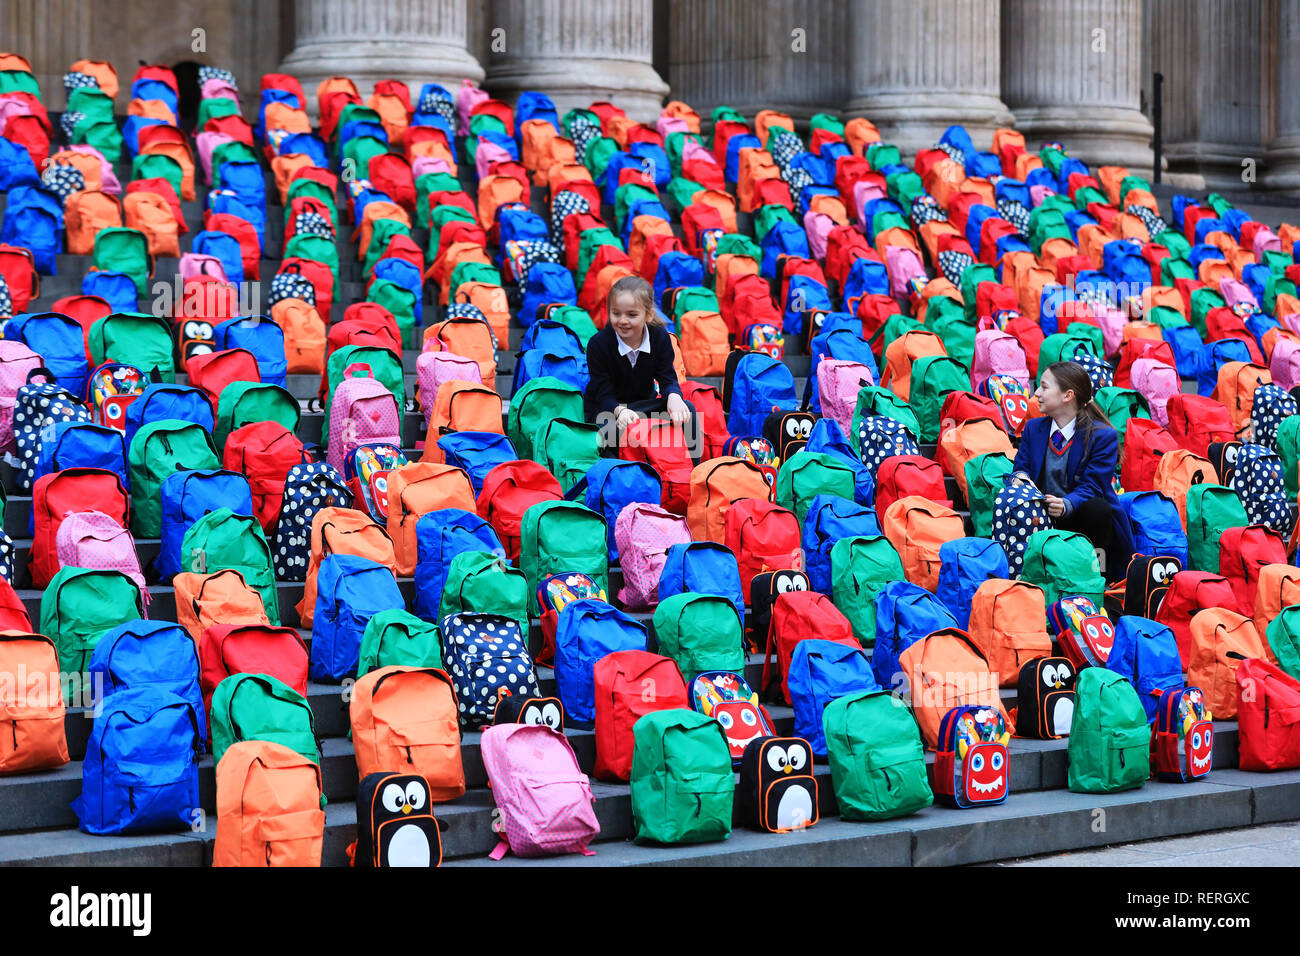 London, UK. 23rd Jan 2019. School children Joana, 9, and sister Jessica, 11, from London look at the 800 schoolbags laid by WaterAid on the steps of St Paul's Cathedral in a moving tribute to the number of children who die every day from dirty water, never reaching their fifth birthday or first day at school. WaterAid placed 800 children's schoolbags on the famous steps of St Paul's Cathedral today as a stark reminder of the number of young children's lives lost every single day due to dirty water and poor sanitation. Credit: Oliver Dixon/Alamy Live News Stock Photo